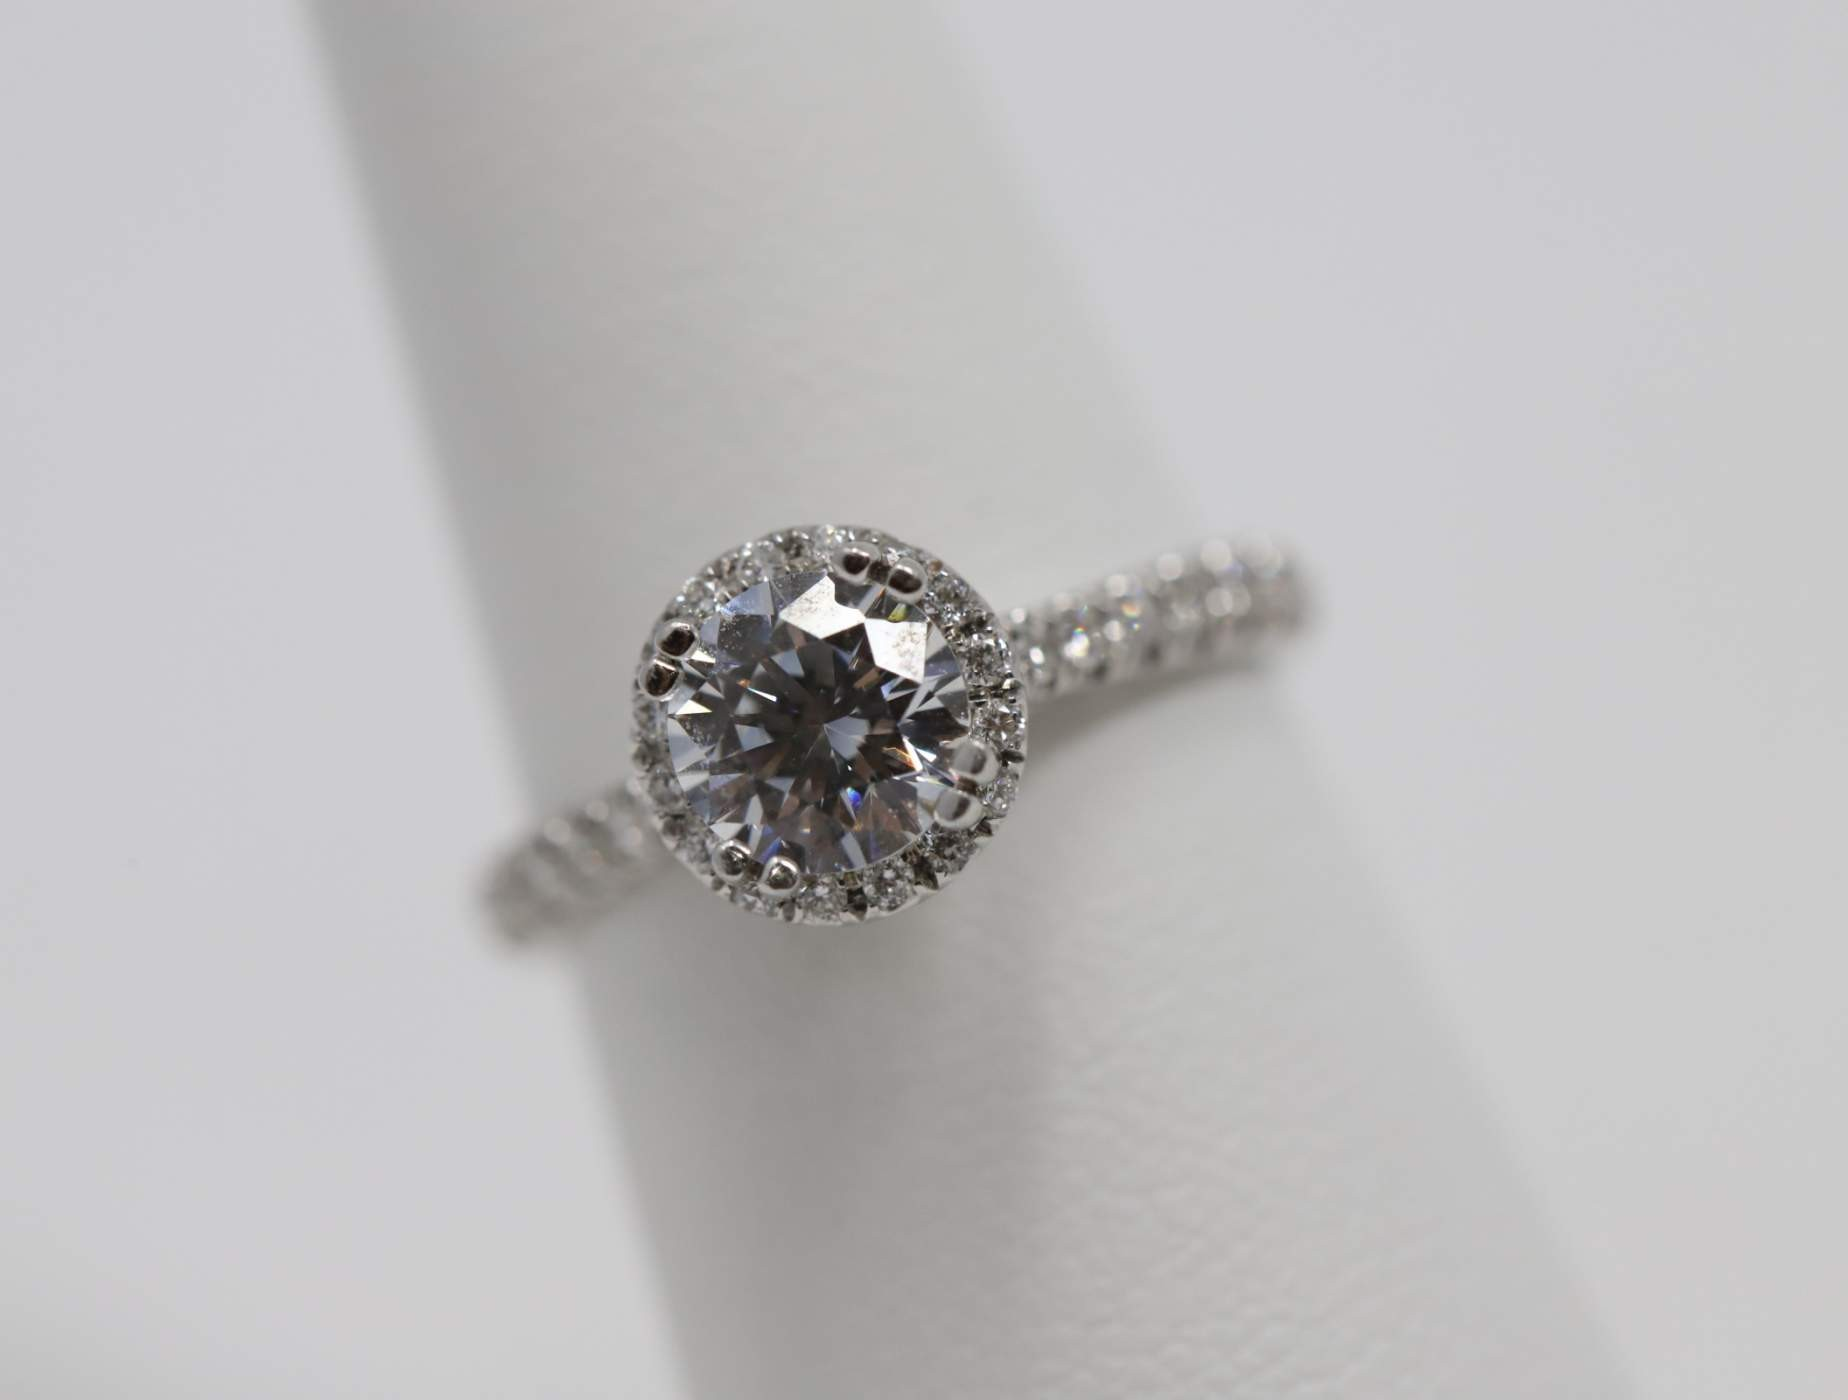 Lady's 14k White Gold 6.5 Mm CZ Engagement Ring